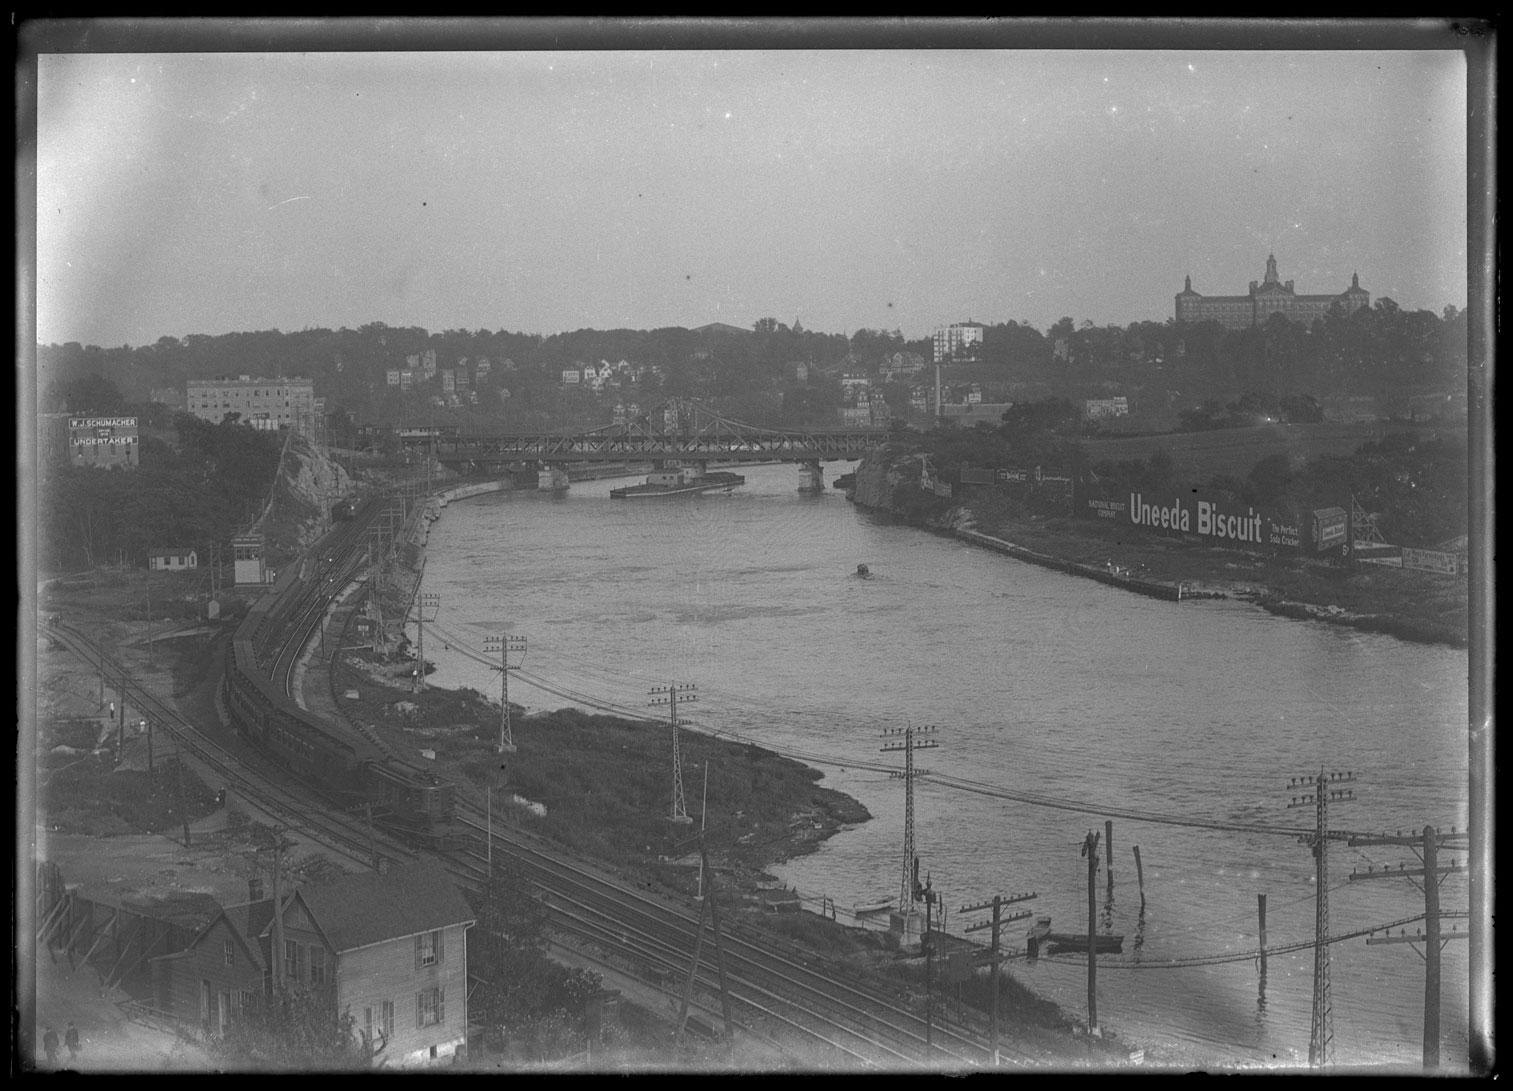 Unidentified express train on track along the Harlem River, New York City, Labor Day, September 4, 1916.